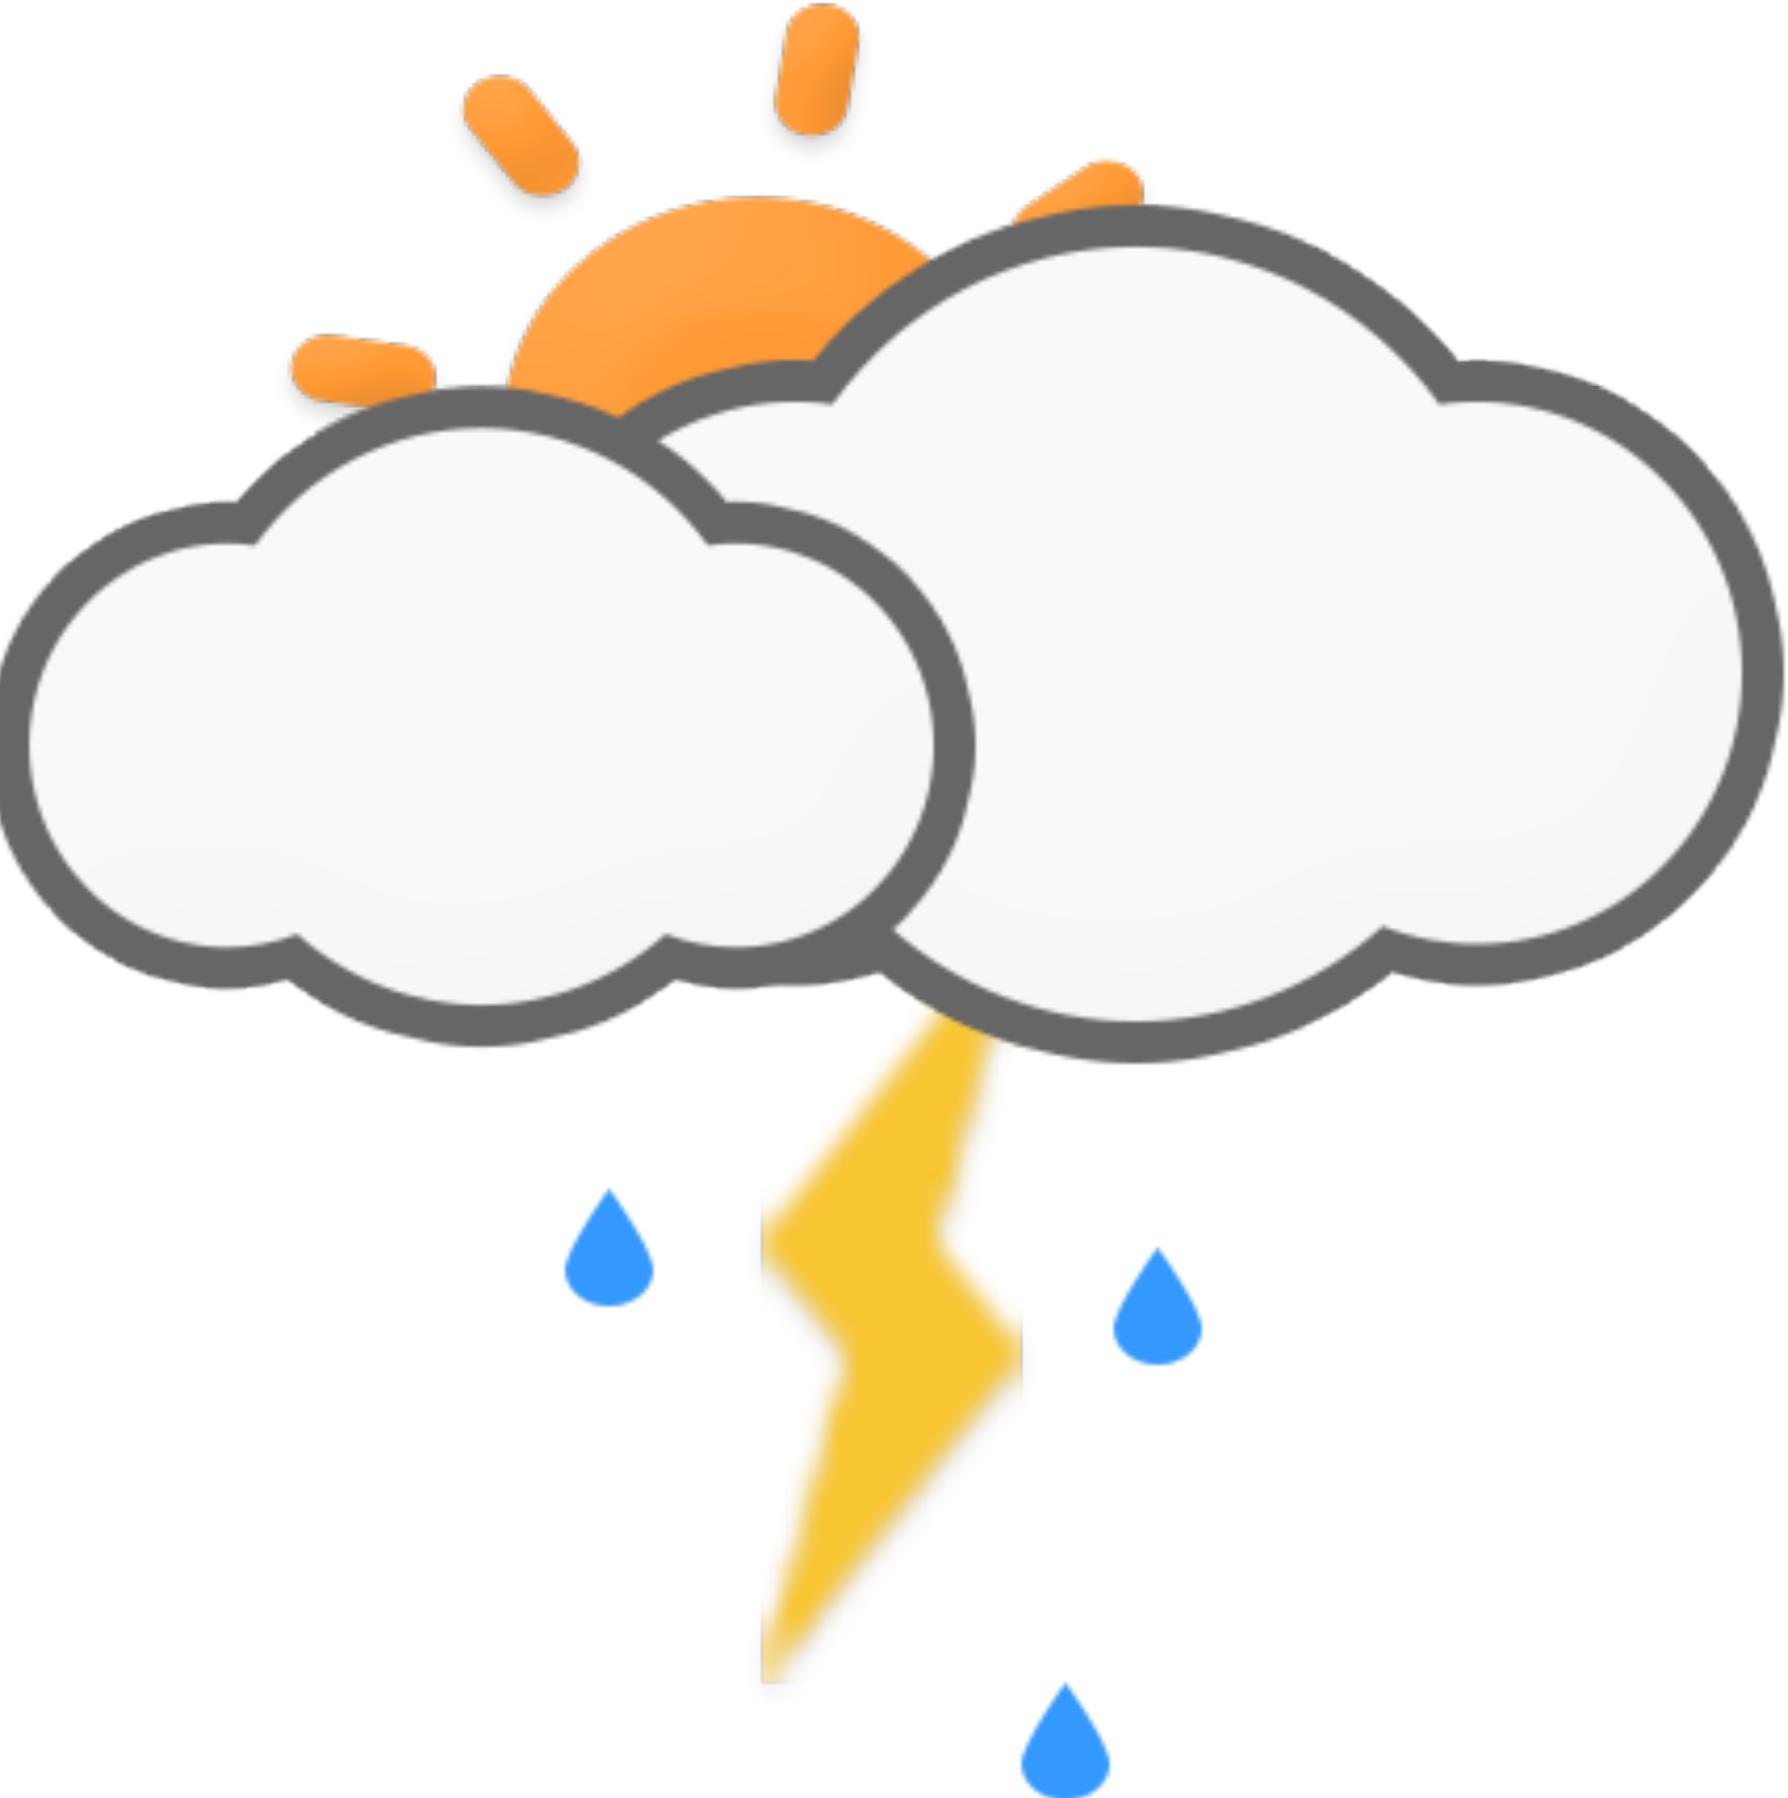 Sun clipart for weather forecast image royalty free download Florida, USA Weather Forecast - Holiday Weather image royalty free download